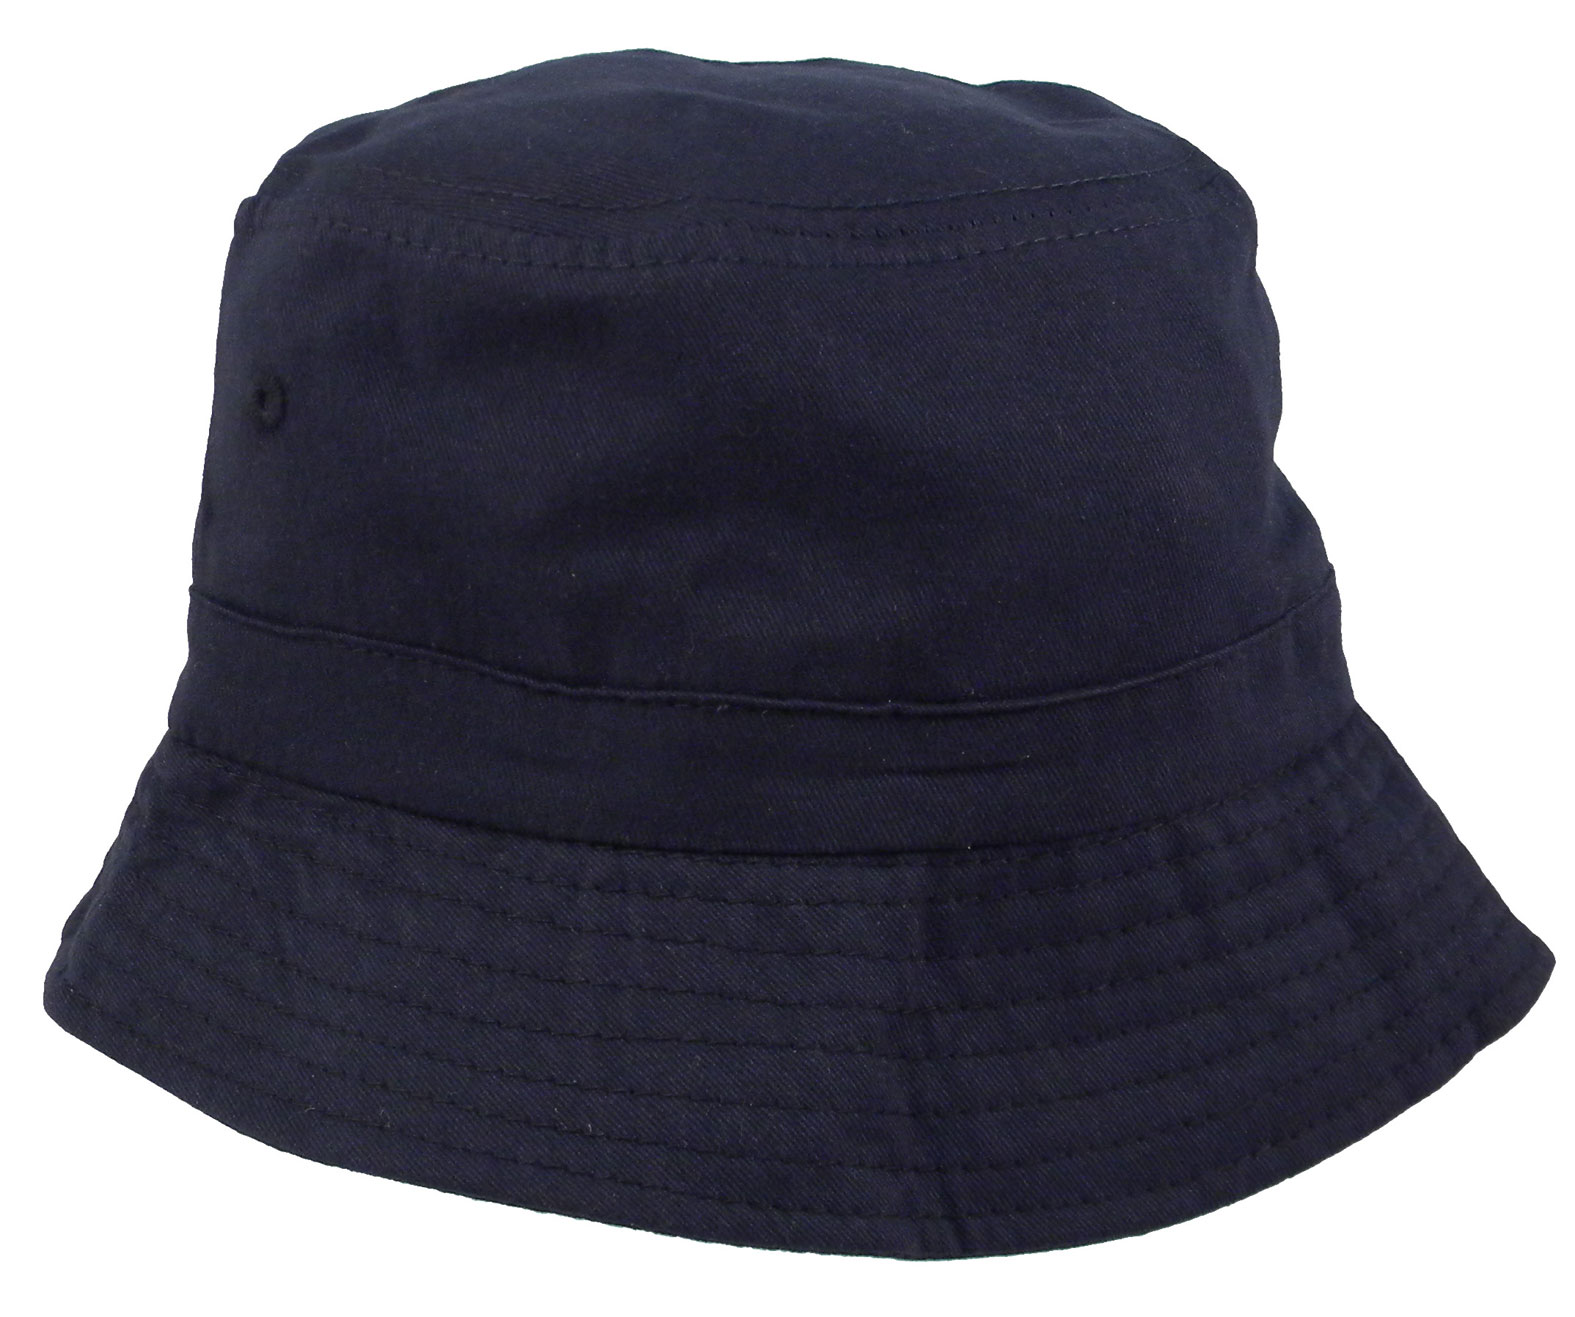 Custom Sunblocking Bucket Hat